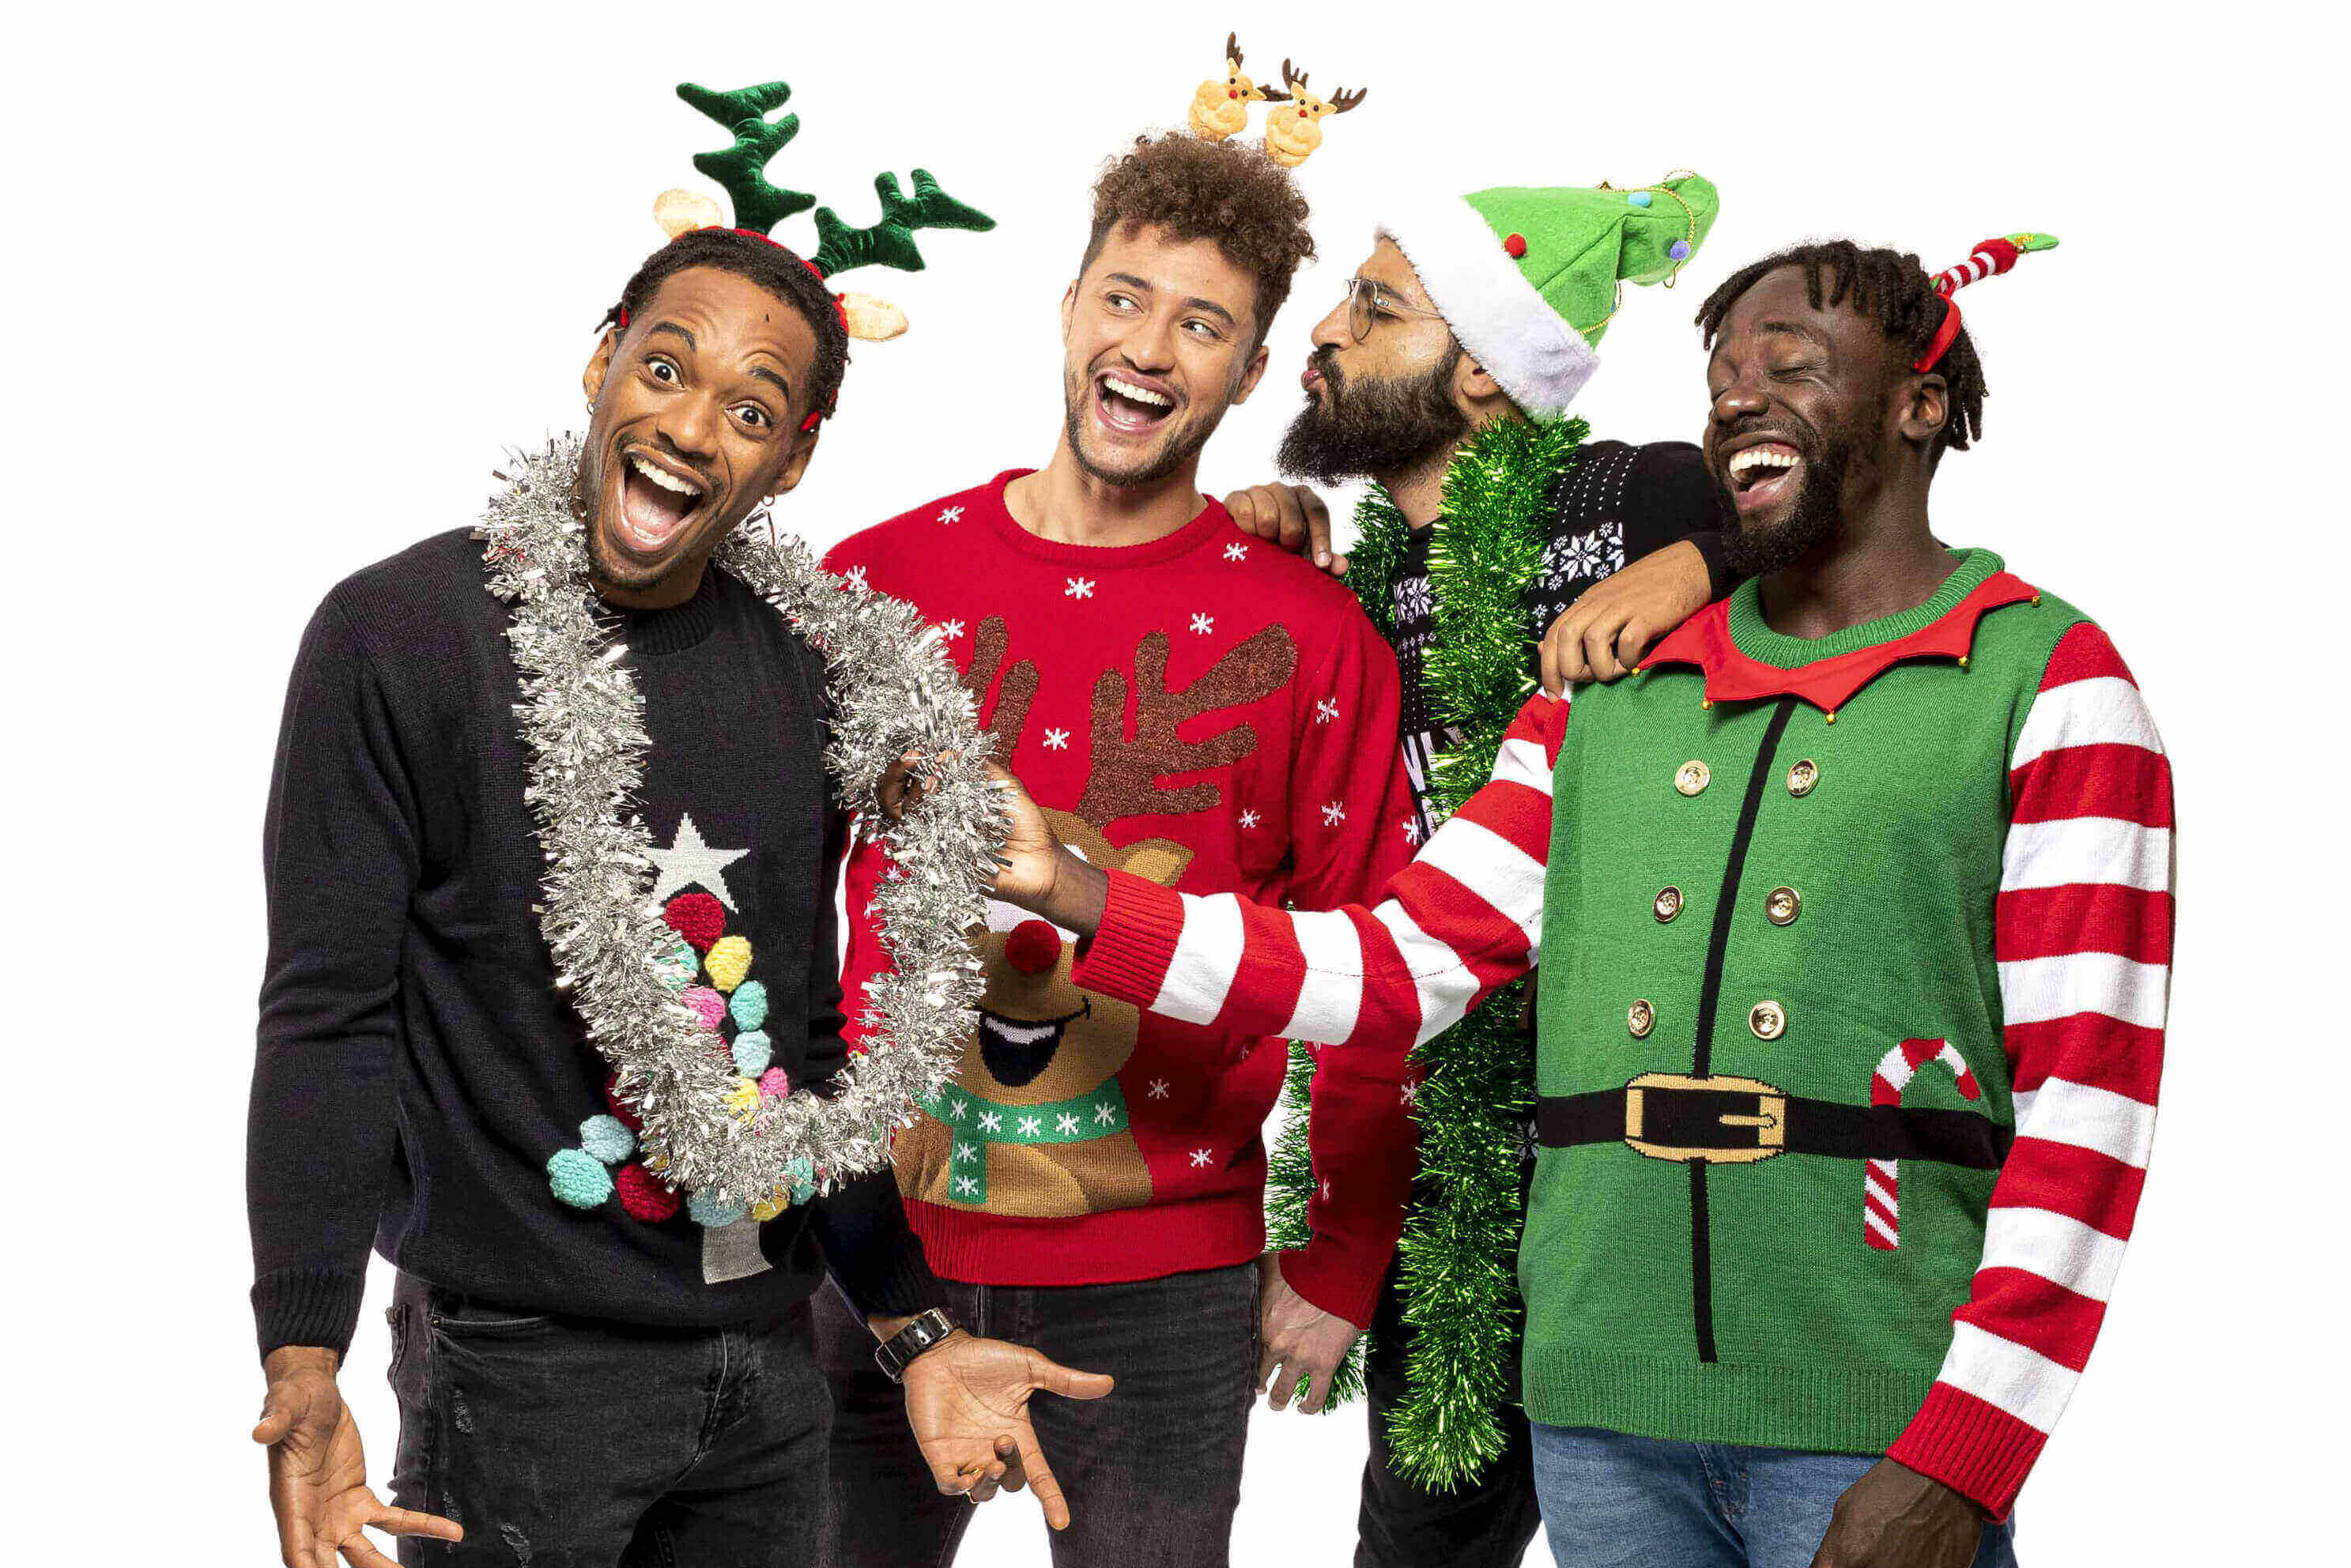 X Factors Rak Su join us for Save the Childrens Christmas Jumper Day, wearing their festive knits.